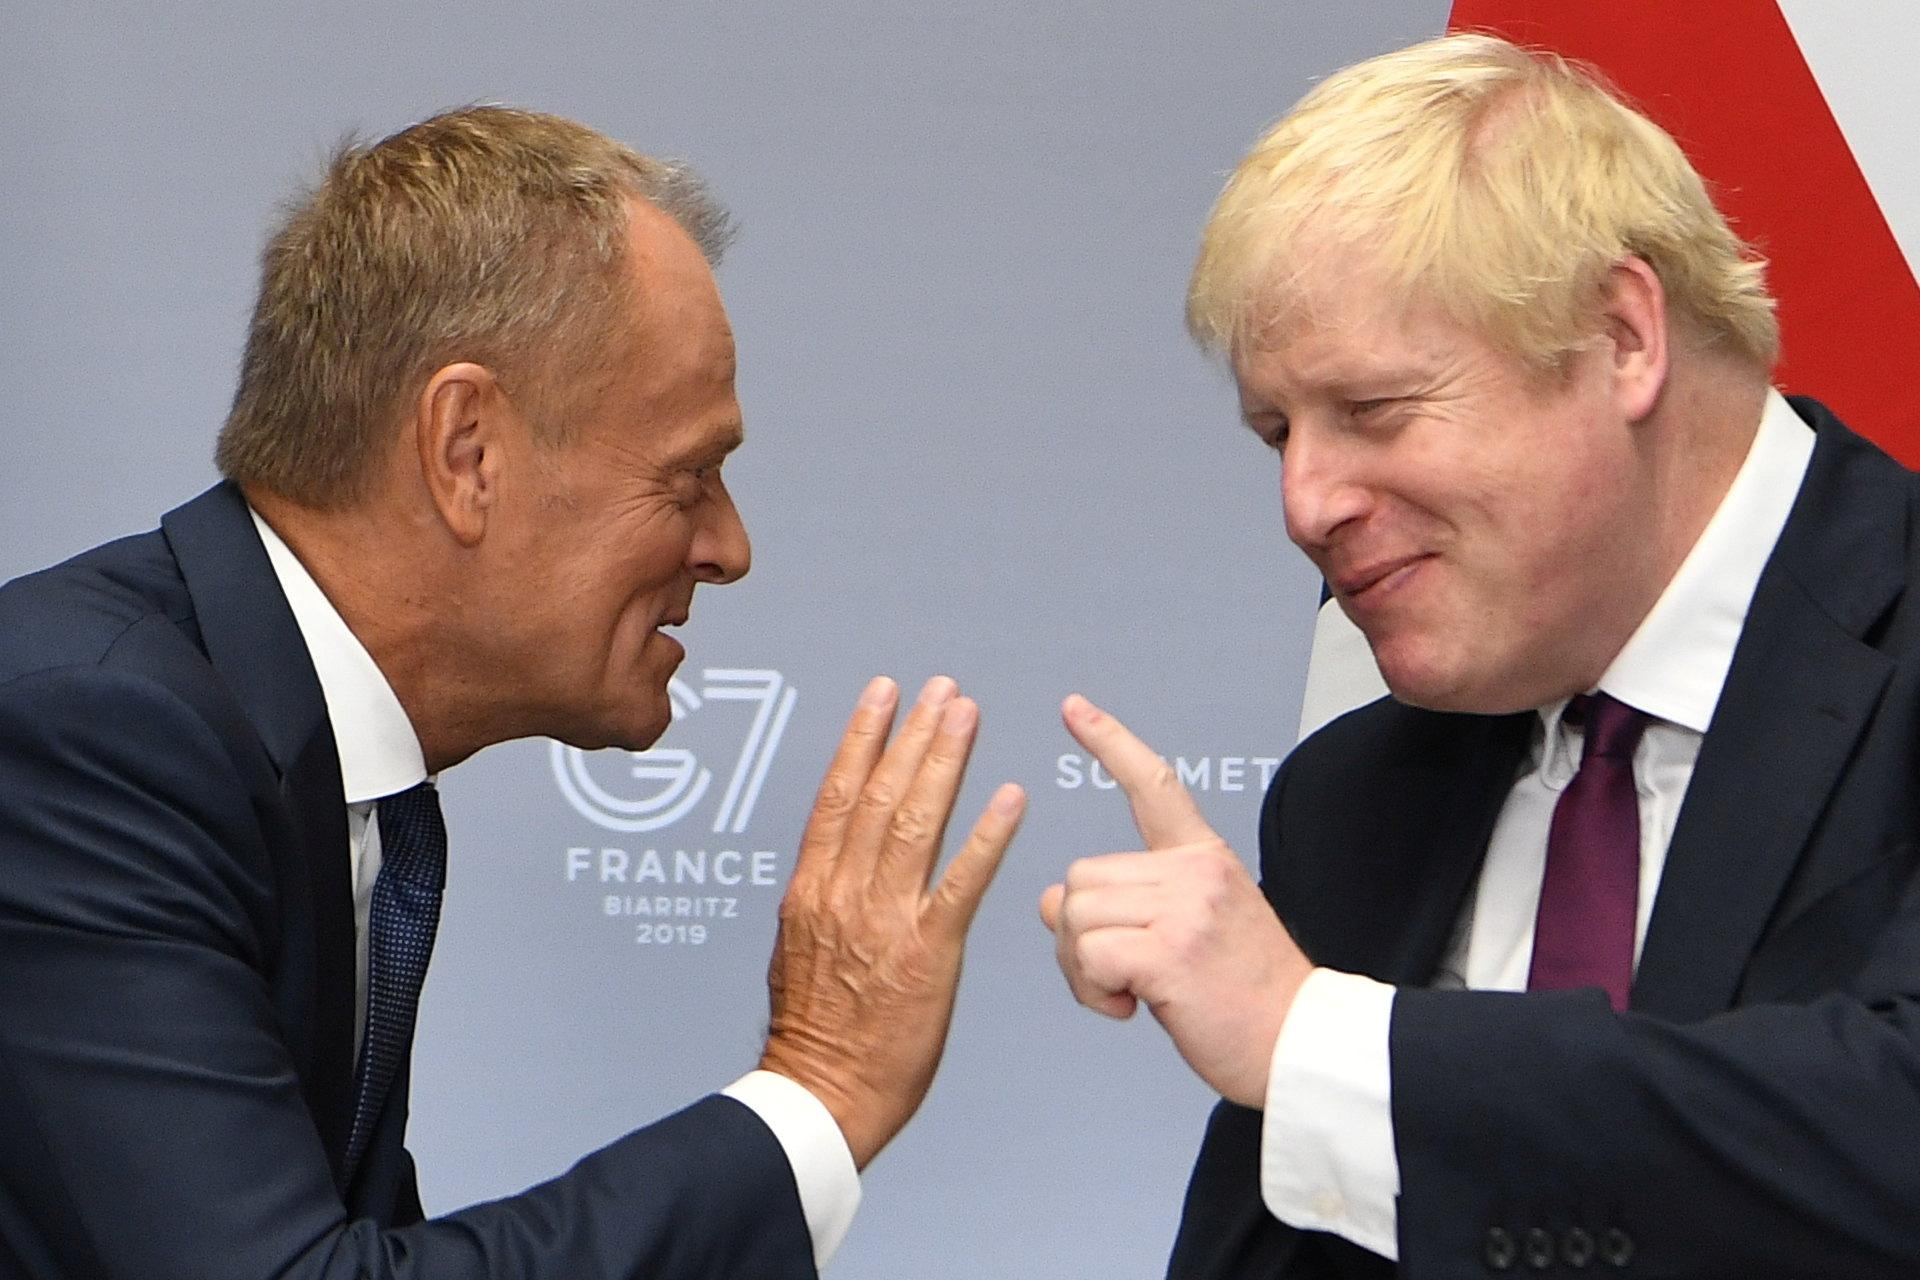 PM Johnson told Tusk: We leave EU on October 31 whatever the circumstances